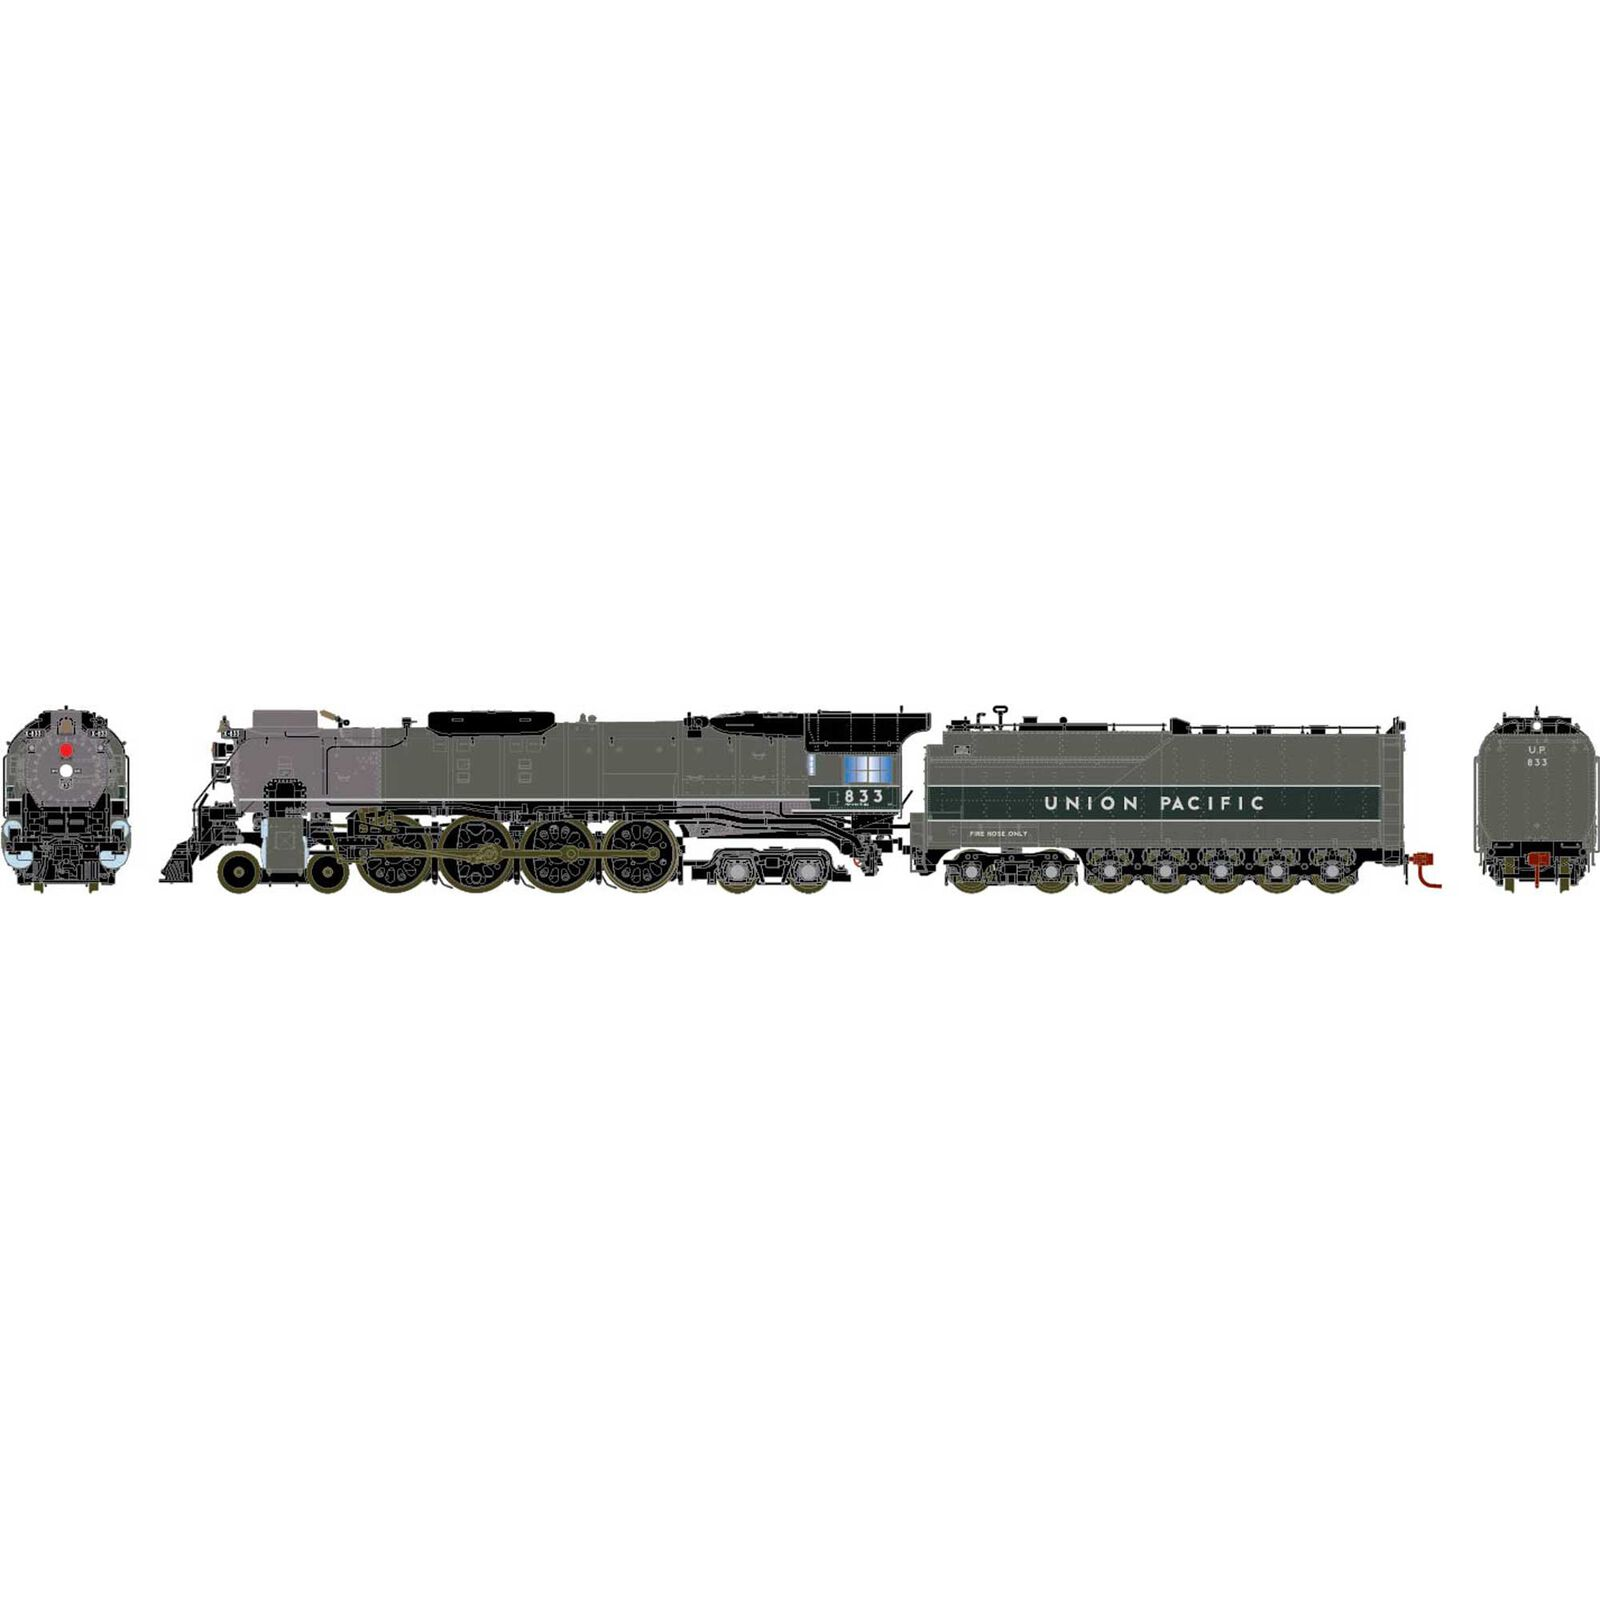 HO FEF-2 4-8-4 with DCC & Sound, UP #833